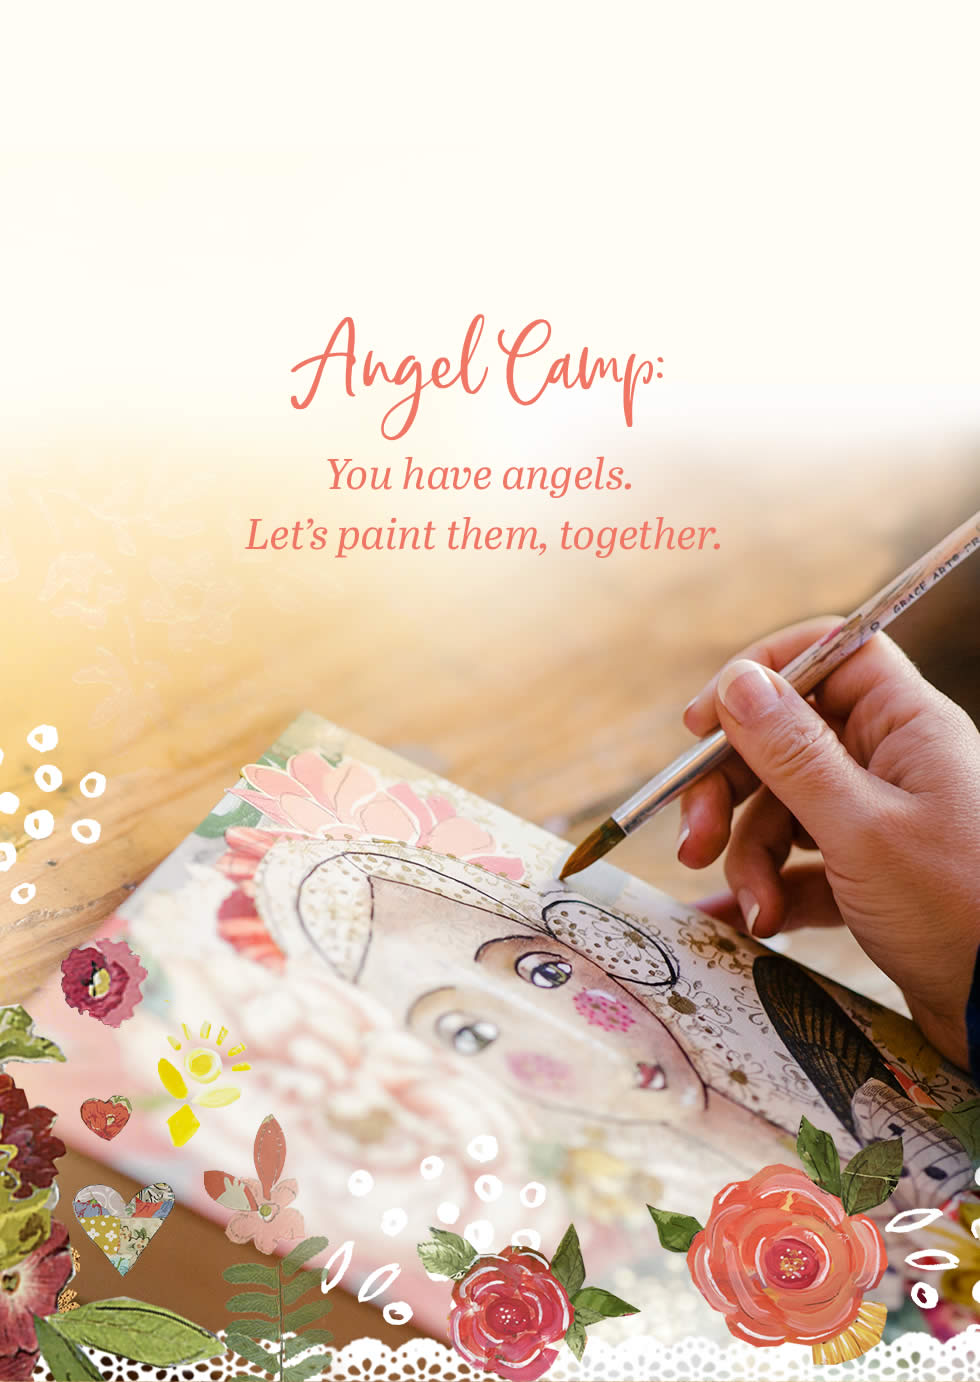 Angel Camp: You have angels. Let's paint them, together.